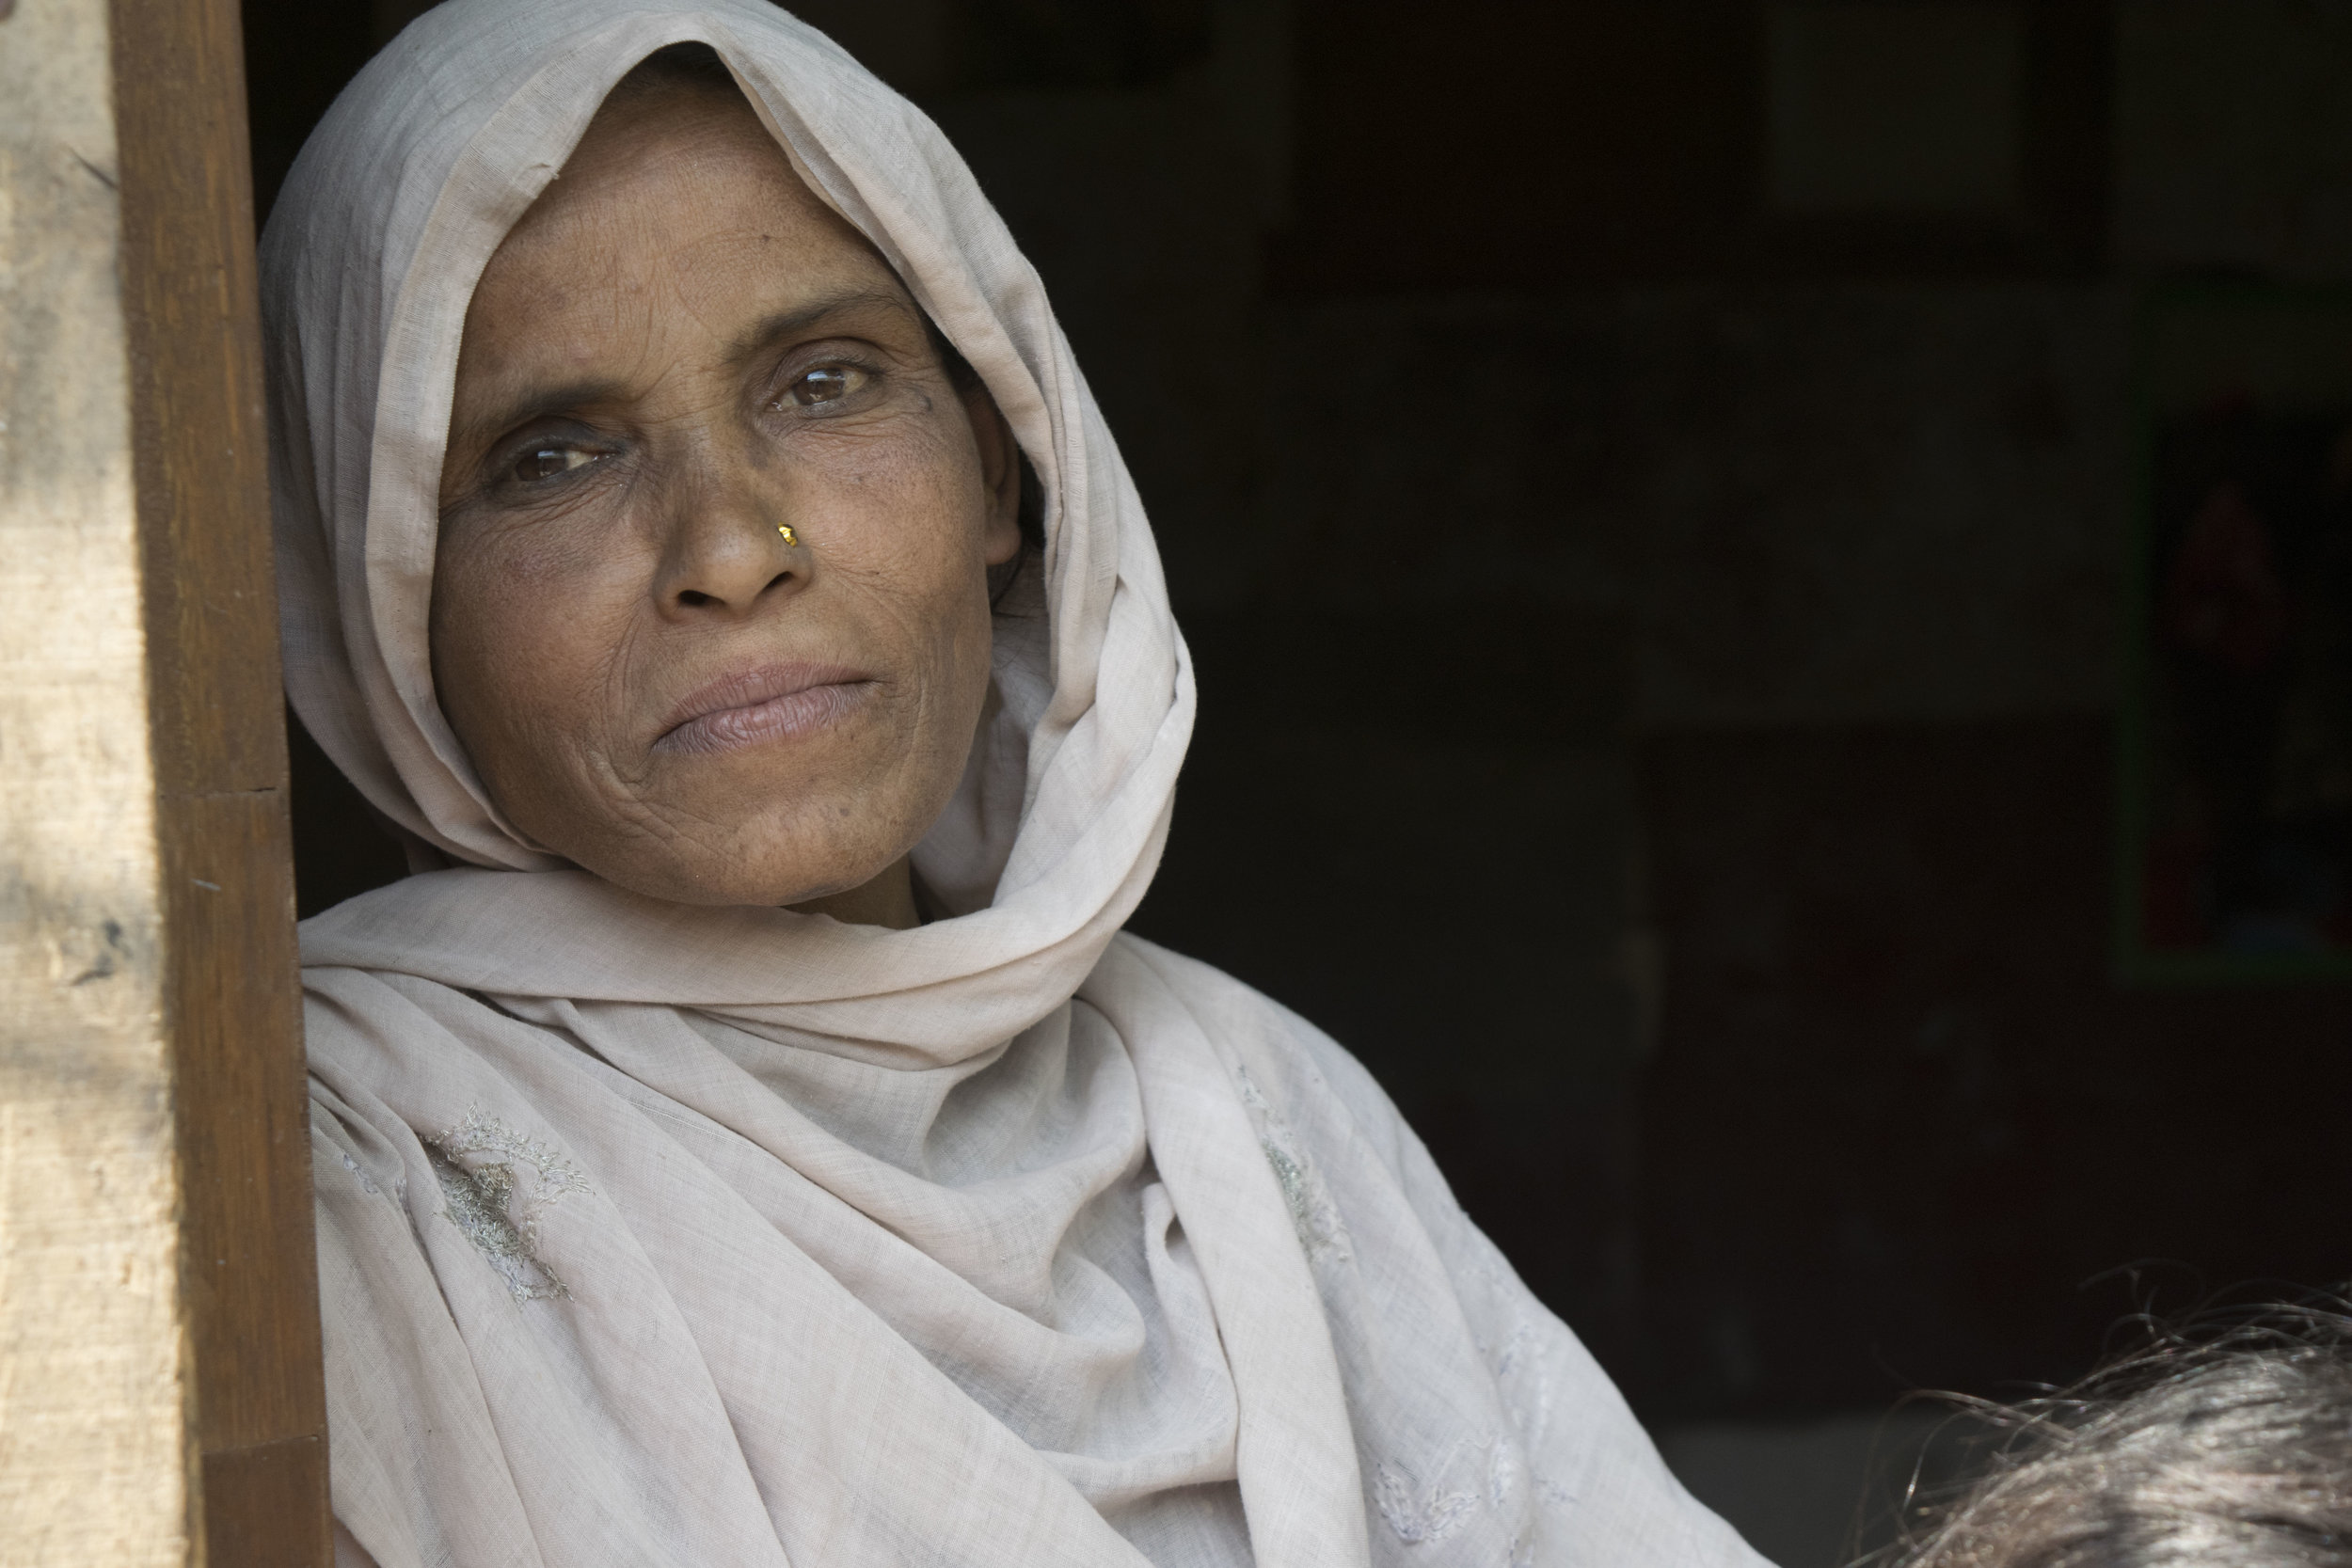 A Rohingya woman living in a refugee camp in Delhi, India. The camps have poor living conditions, with no access to running water. Photo by Meagan Clark.